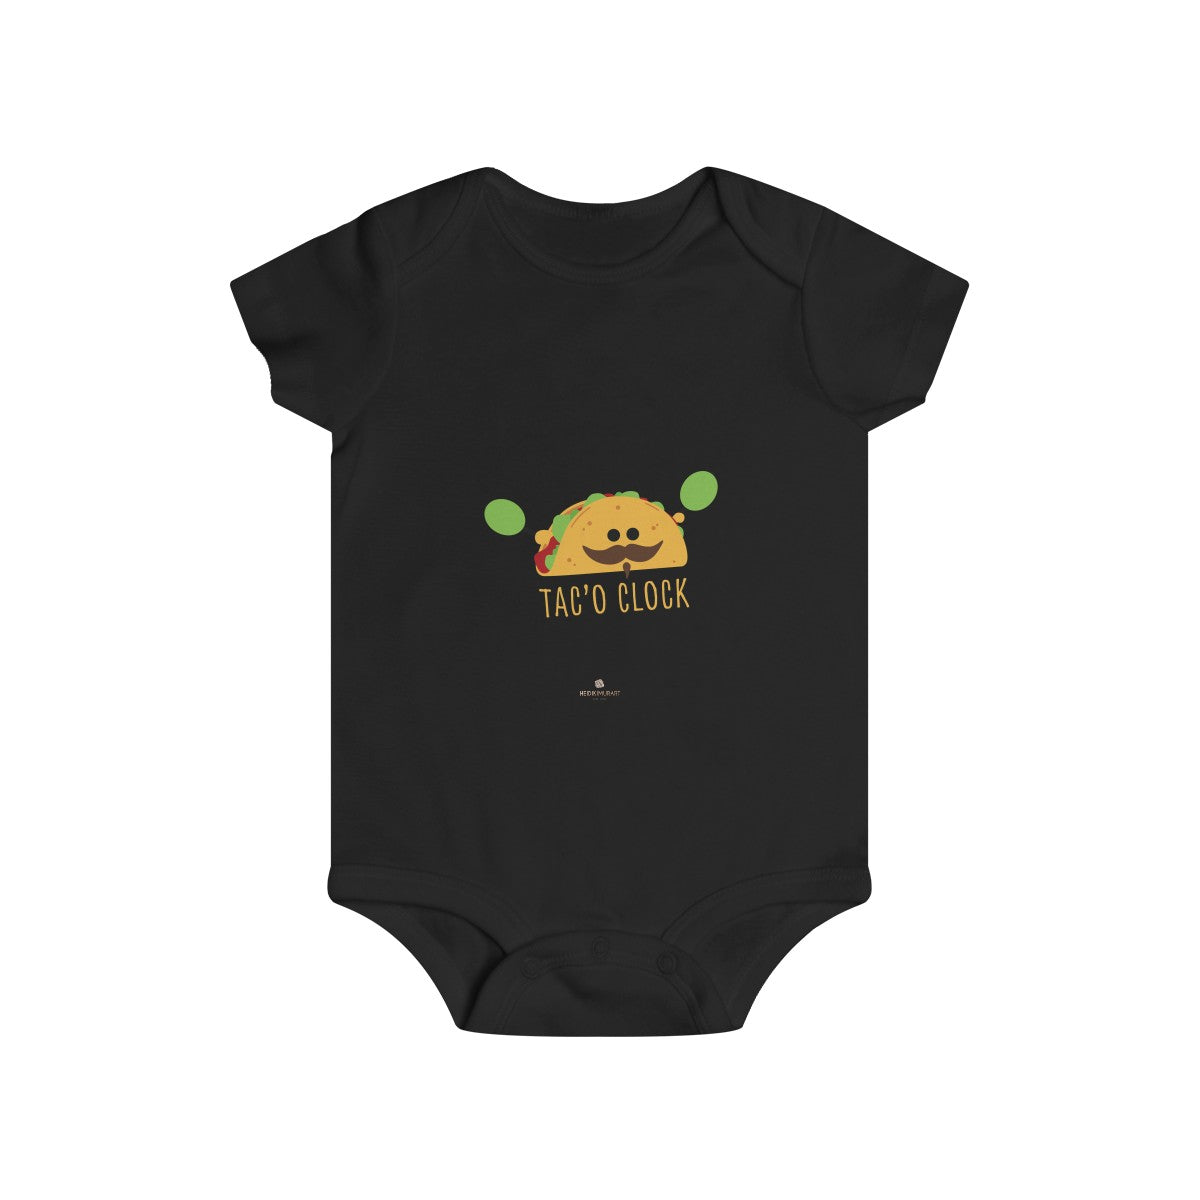 Taco Lover Cute Infant Rip Snap Soft Cotton Tee Regular Fit Premium Quality Baby Bodysuits - Made in USA